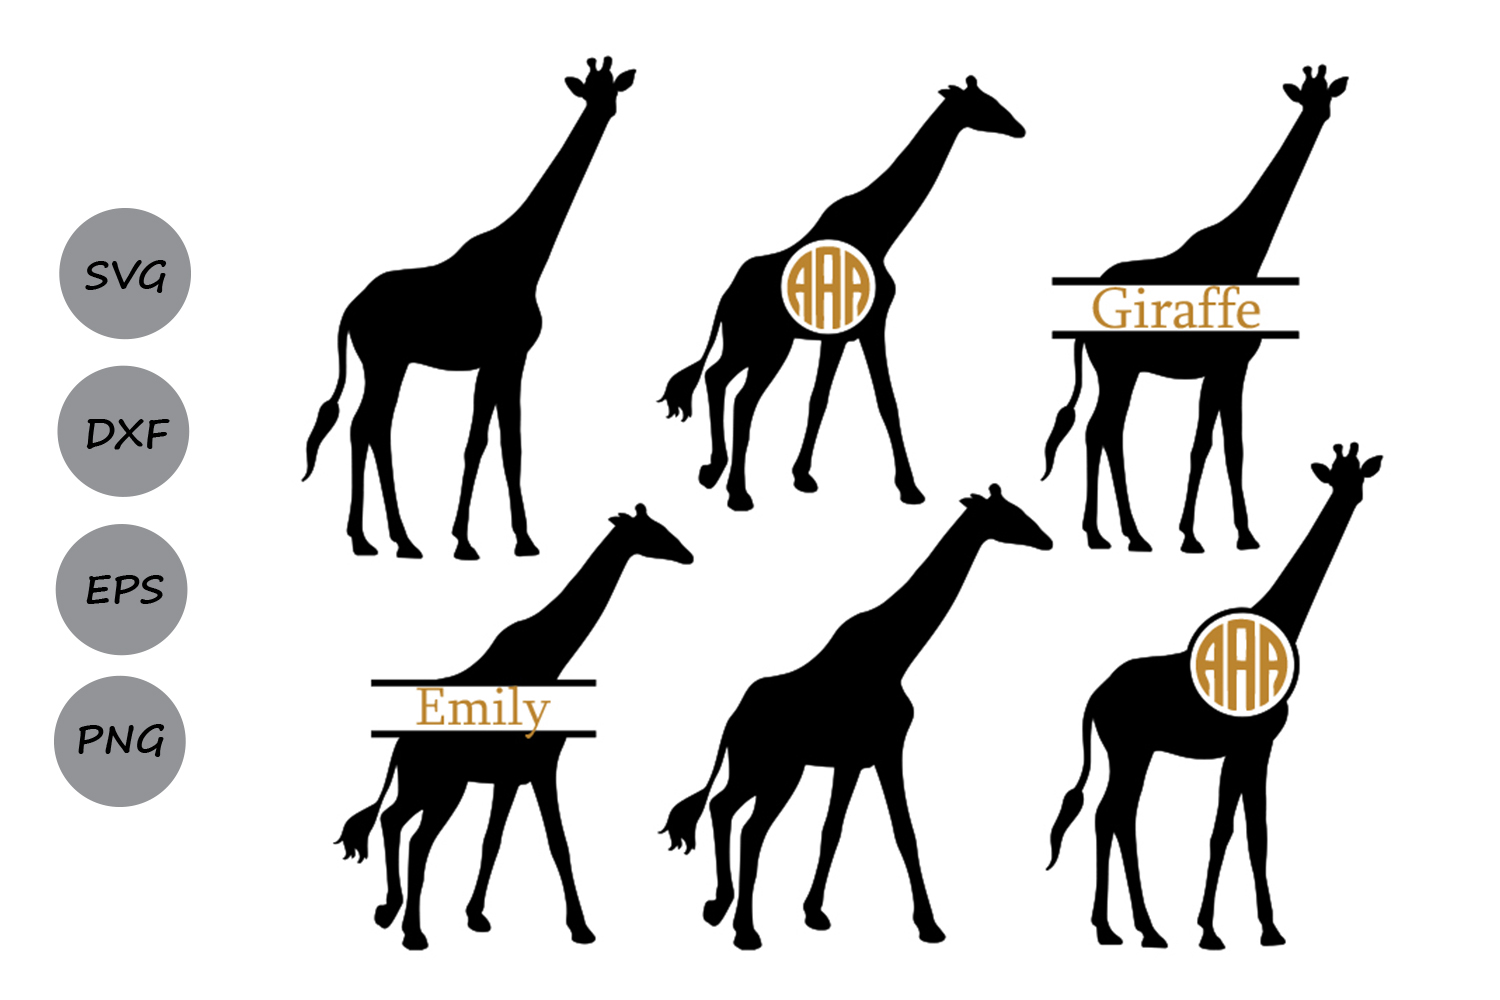 Download Free Giraffe Monogram Graphic By Cosmosfineart Creative Fabrica for Cricut Explore, Silhouette and other cutting machines.